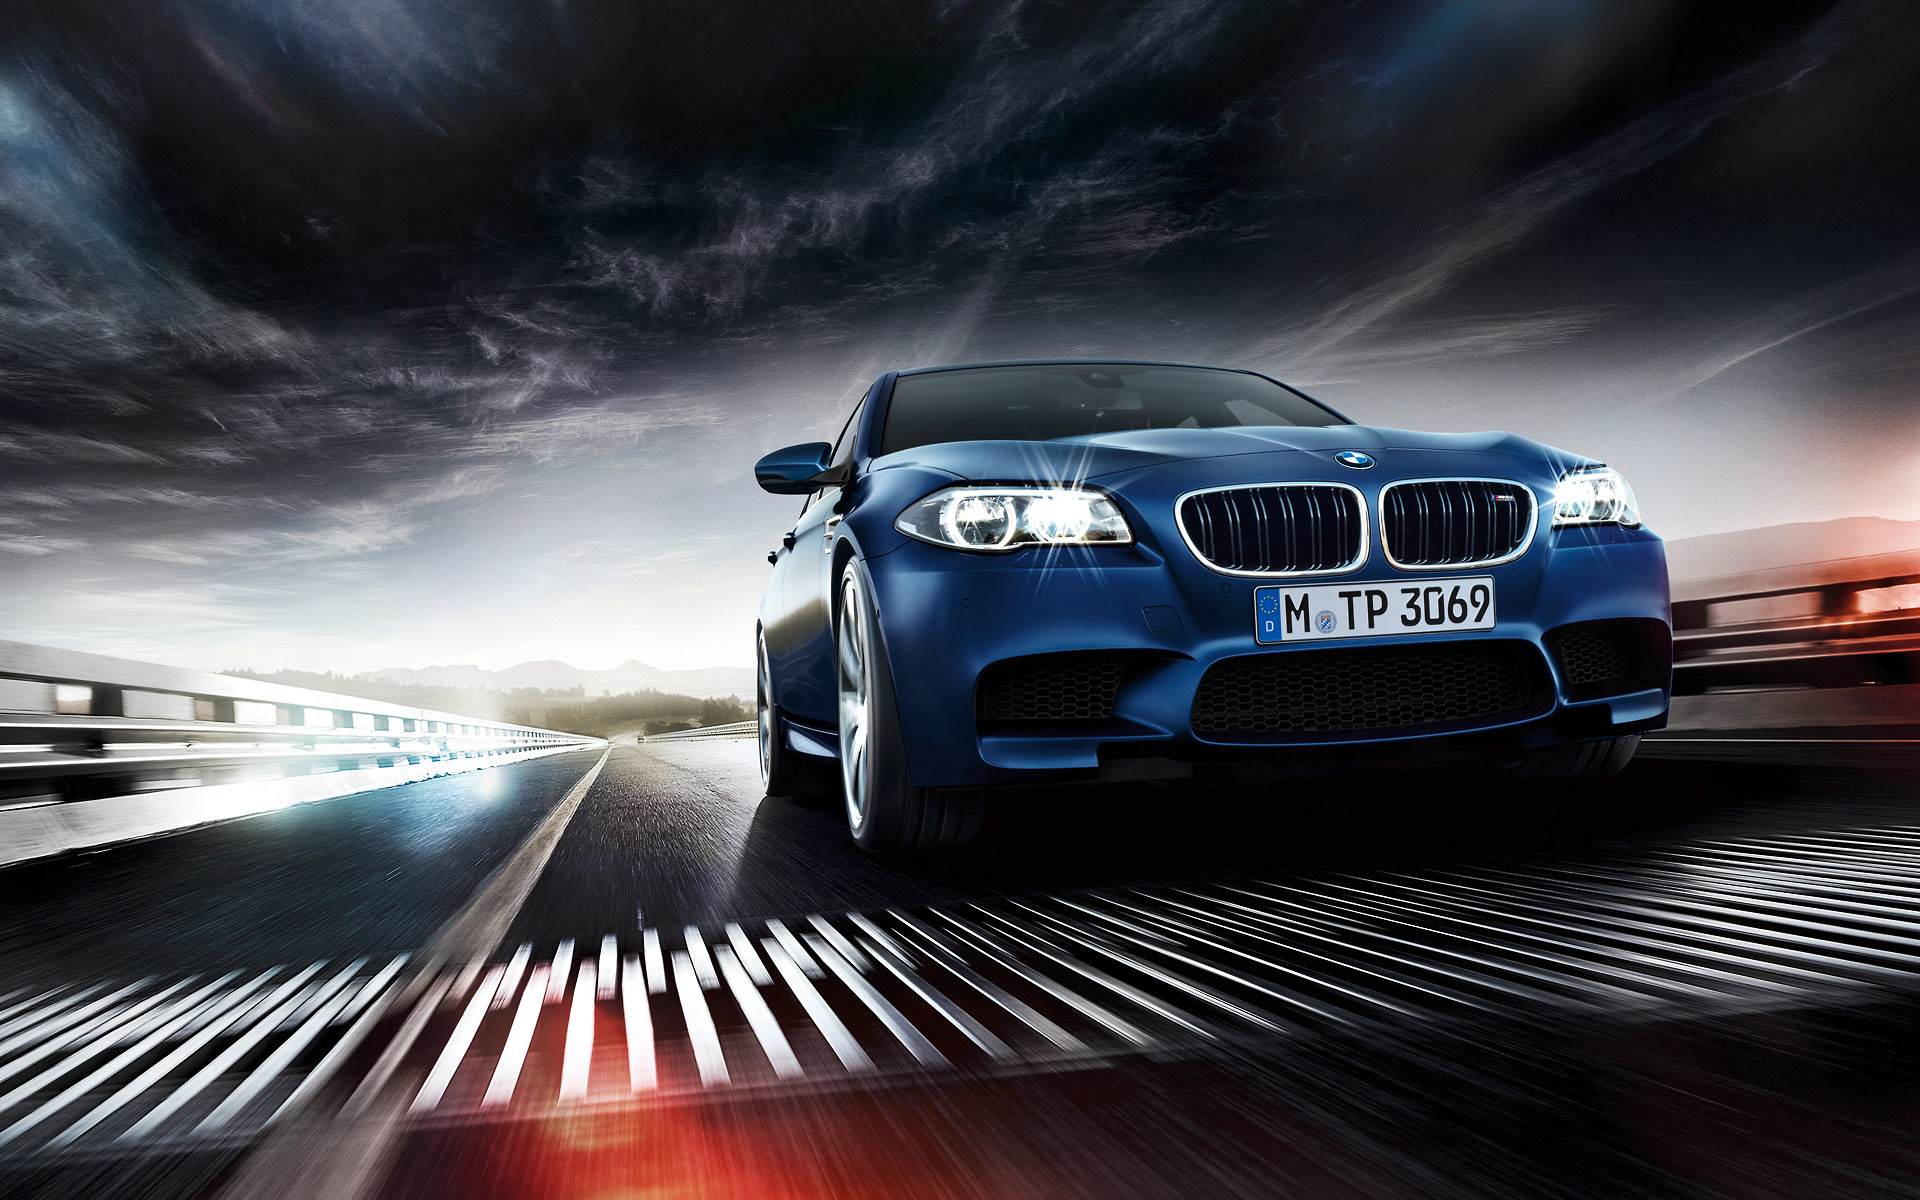 Free Download Bmw Car Wallpaperspictures Bmw Widescreen Hd Desktop 2016 Car 1920x1200 For Your Desktop Mobile Tablet Explore 40 2016 Bmw M5 Wallpaper Bmw M5 Wallpaper Widescreen Bmw Wallpapers 2006 Bmw M5 Wallpaper